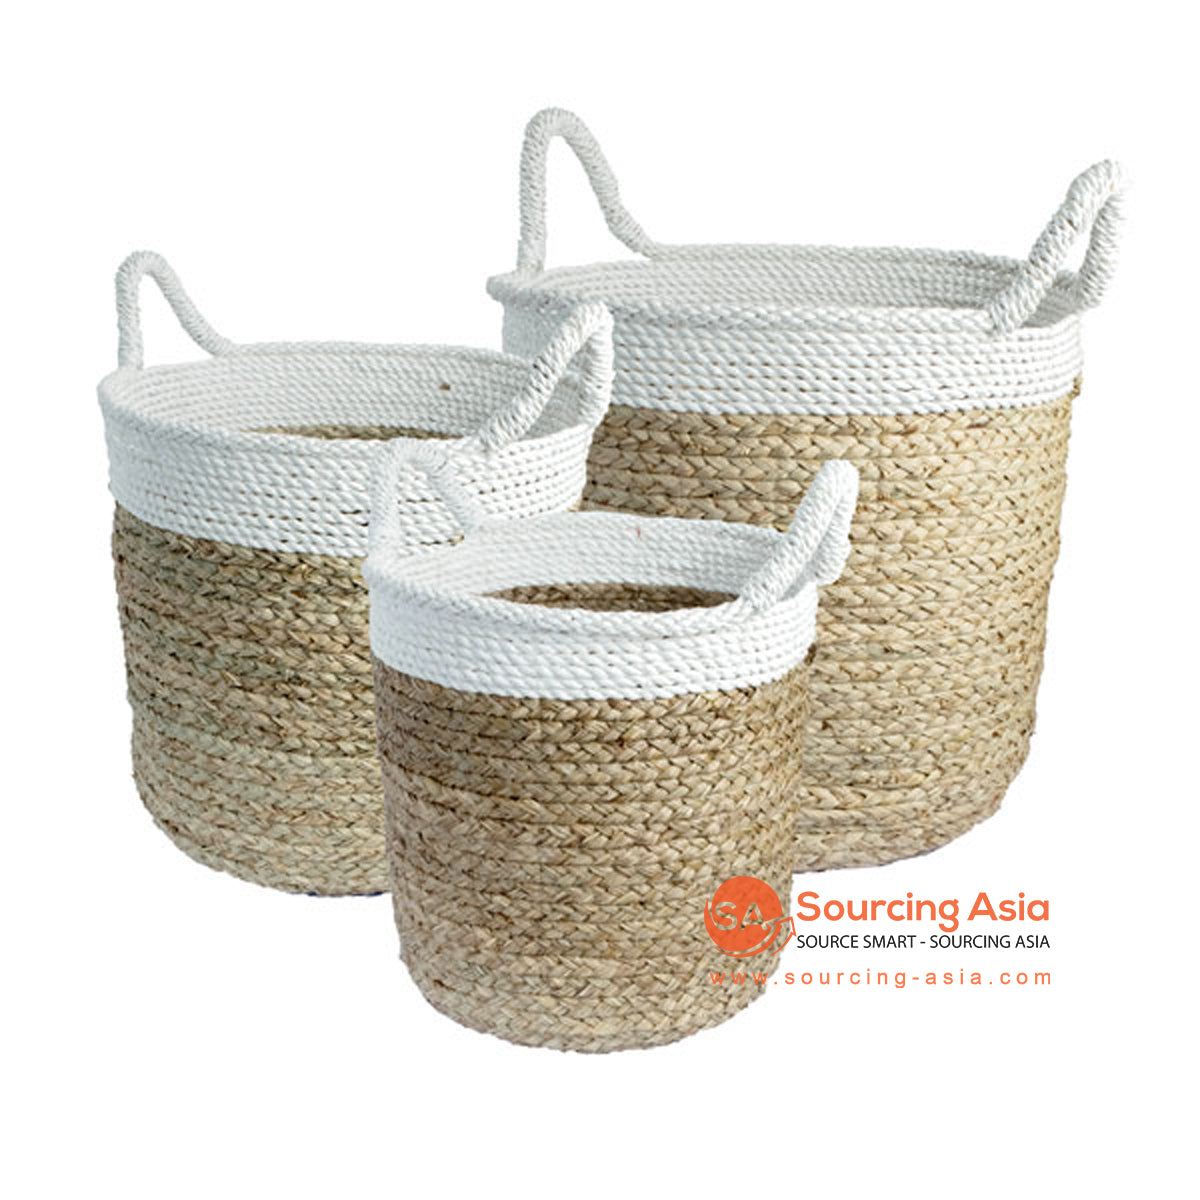 SHL168-8 SET OF THREE MENDONG BASKETS WITH WHITE EDGES